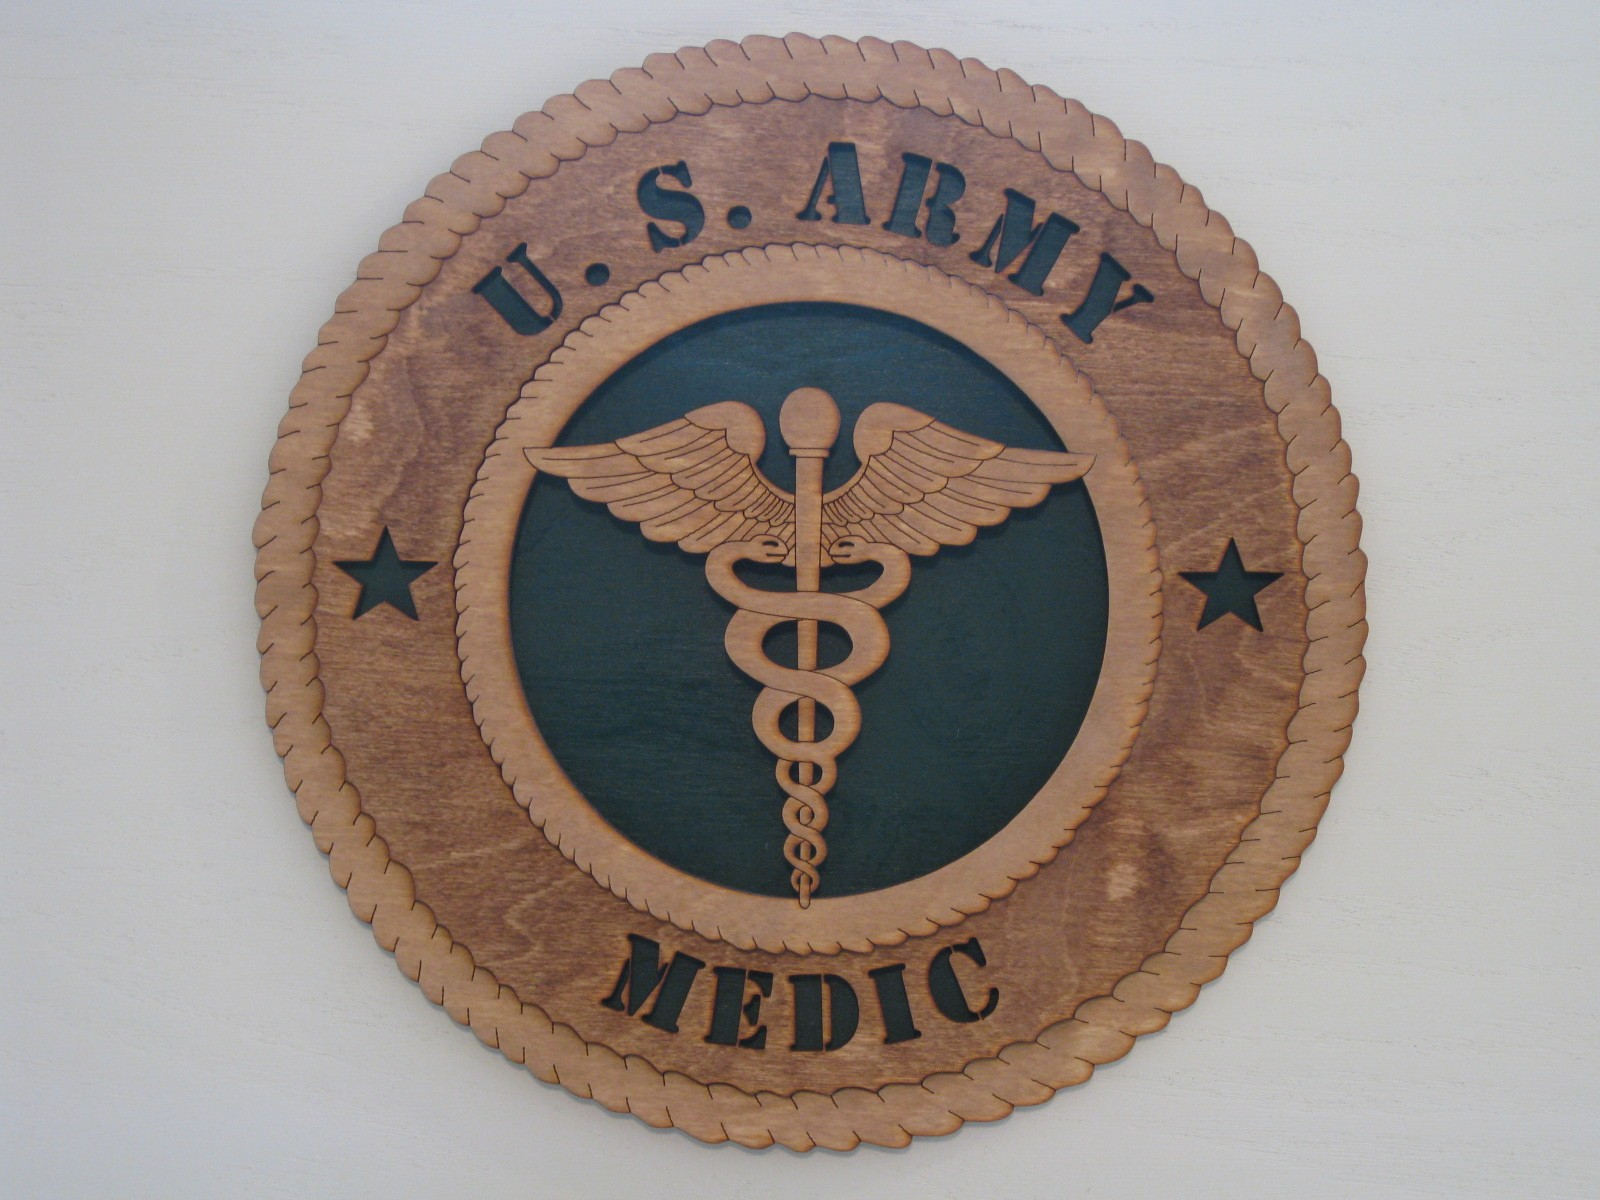 US Army Medic  Micks Military Shop